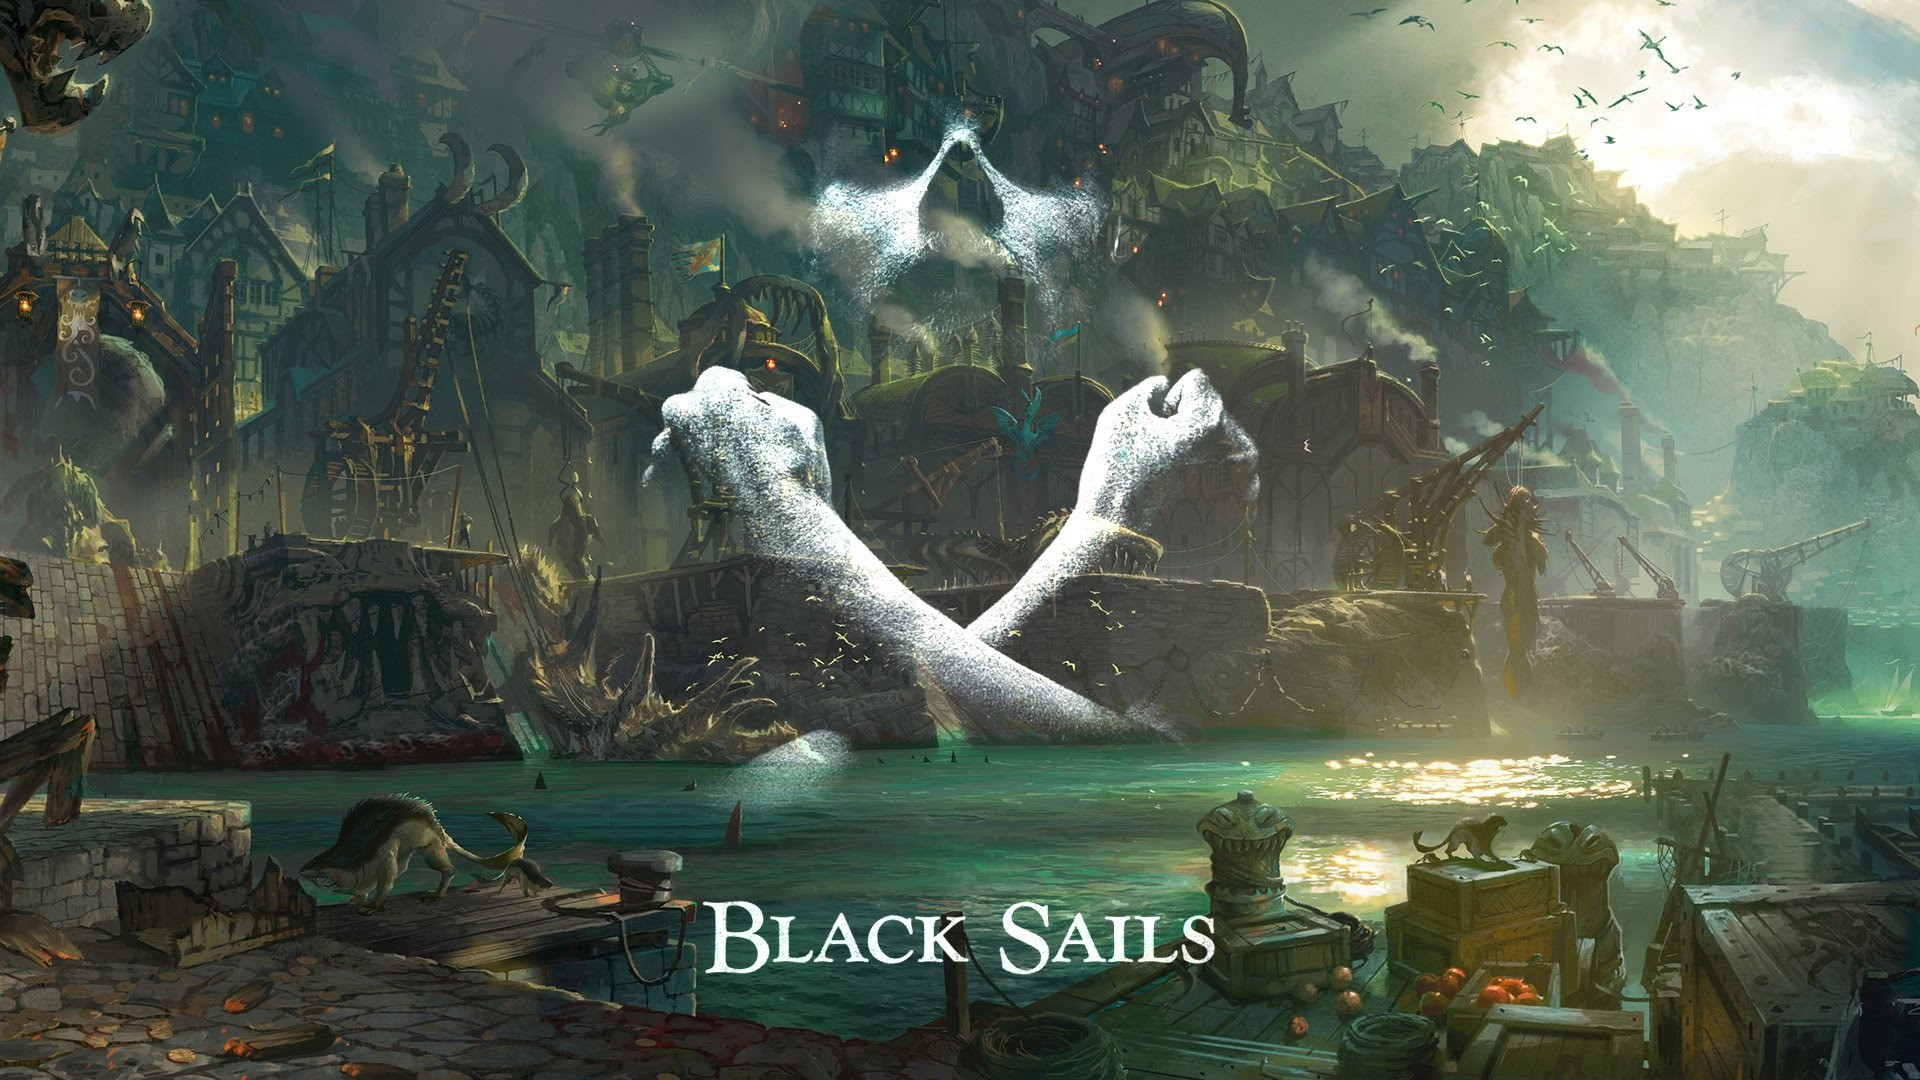 League of Legends Inspiration from Black Sails